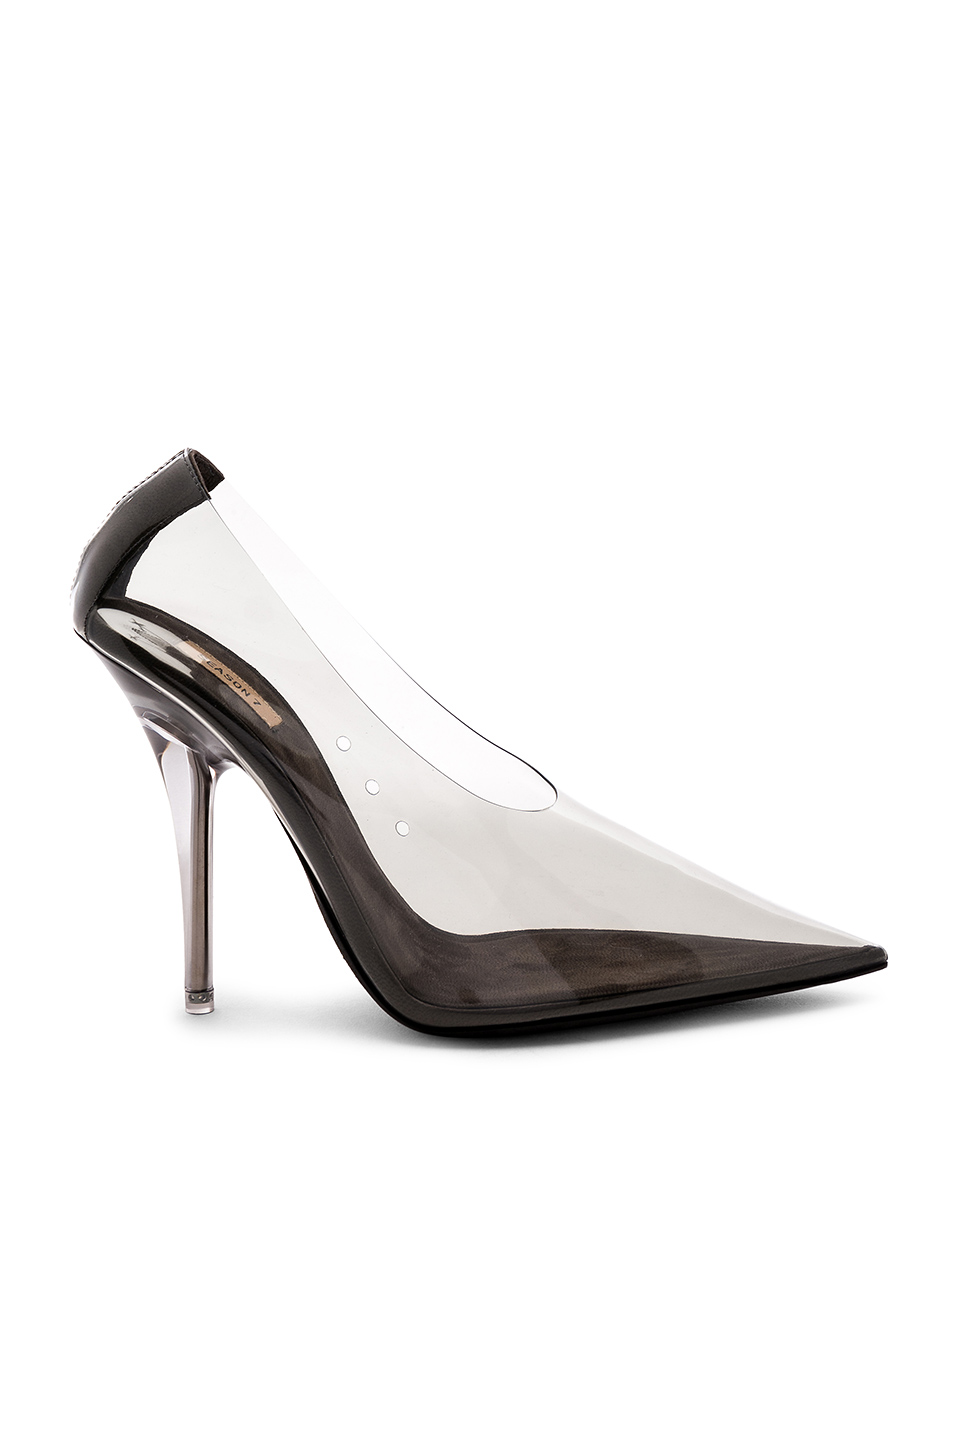 SEASON 7 Pump 110MM by Yeezy, available on revolve.com for $650 Kim Kardashian Shoes Exact Product